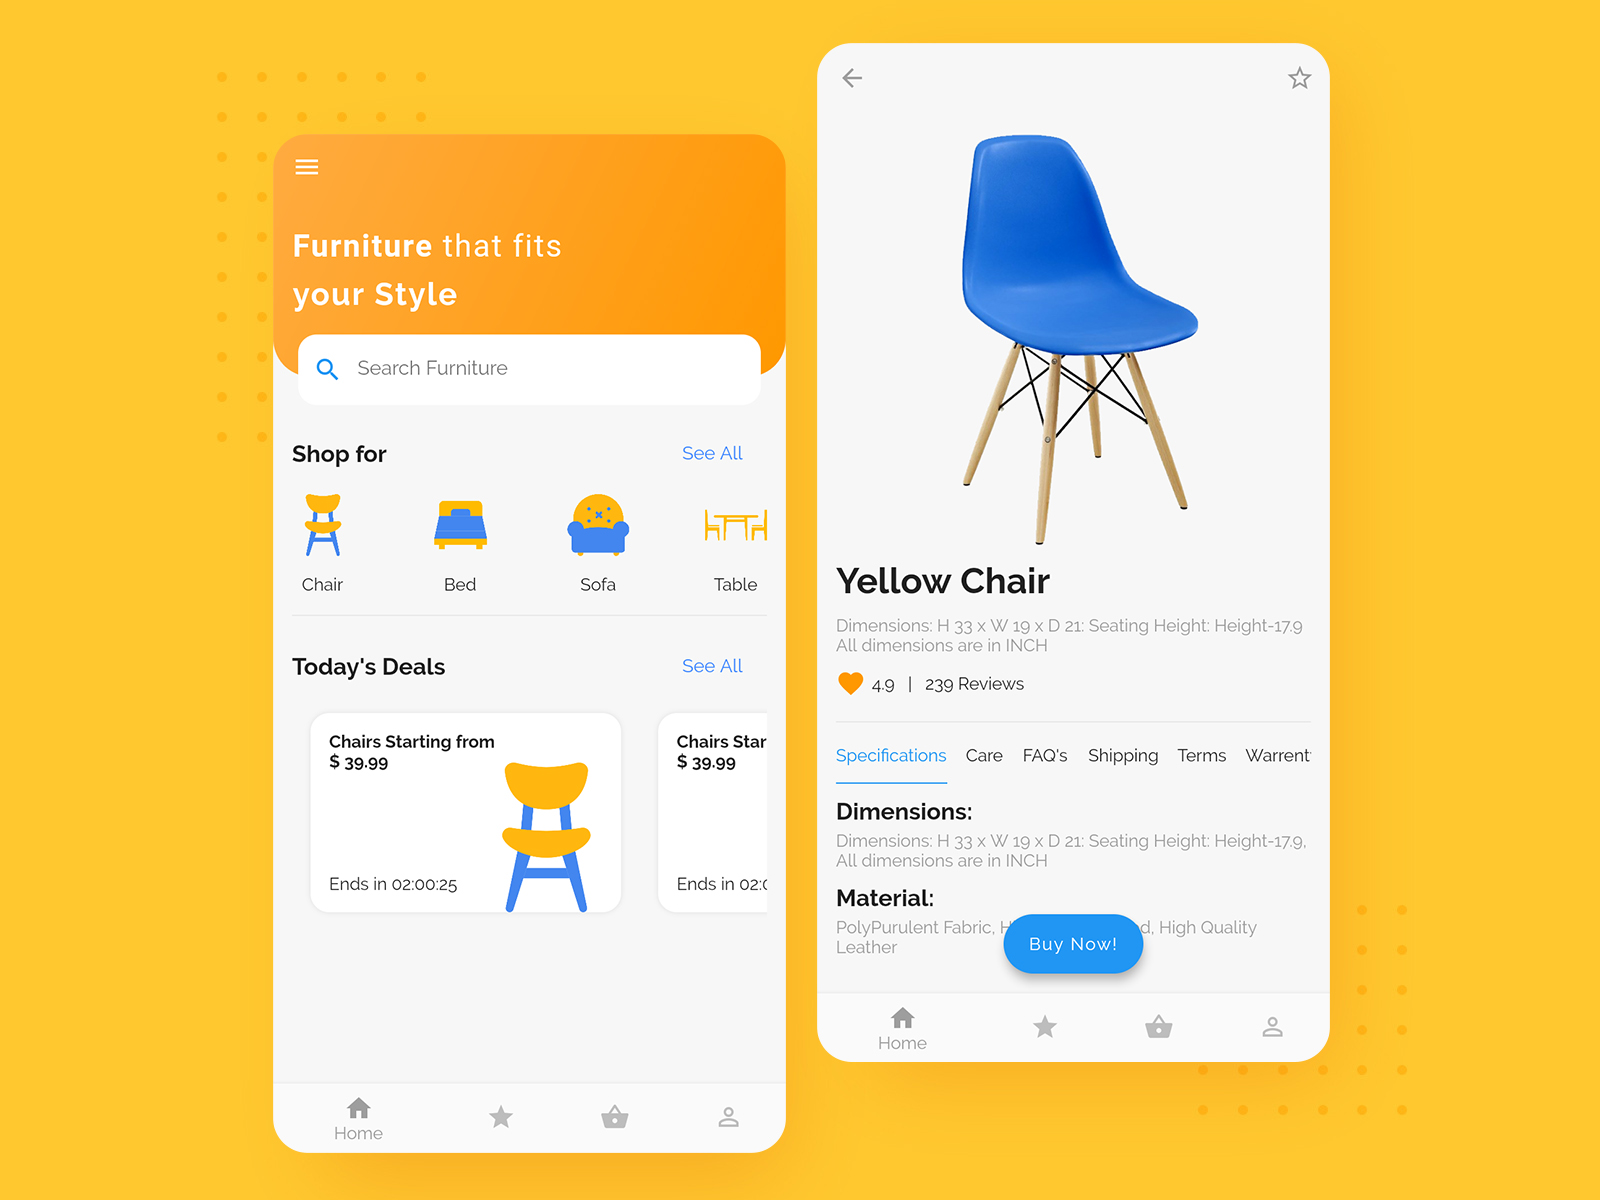 Flutter Tutorial: Furniture app UI - Cybdom Tech